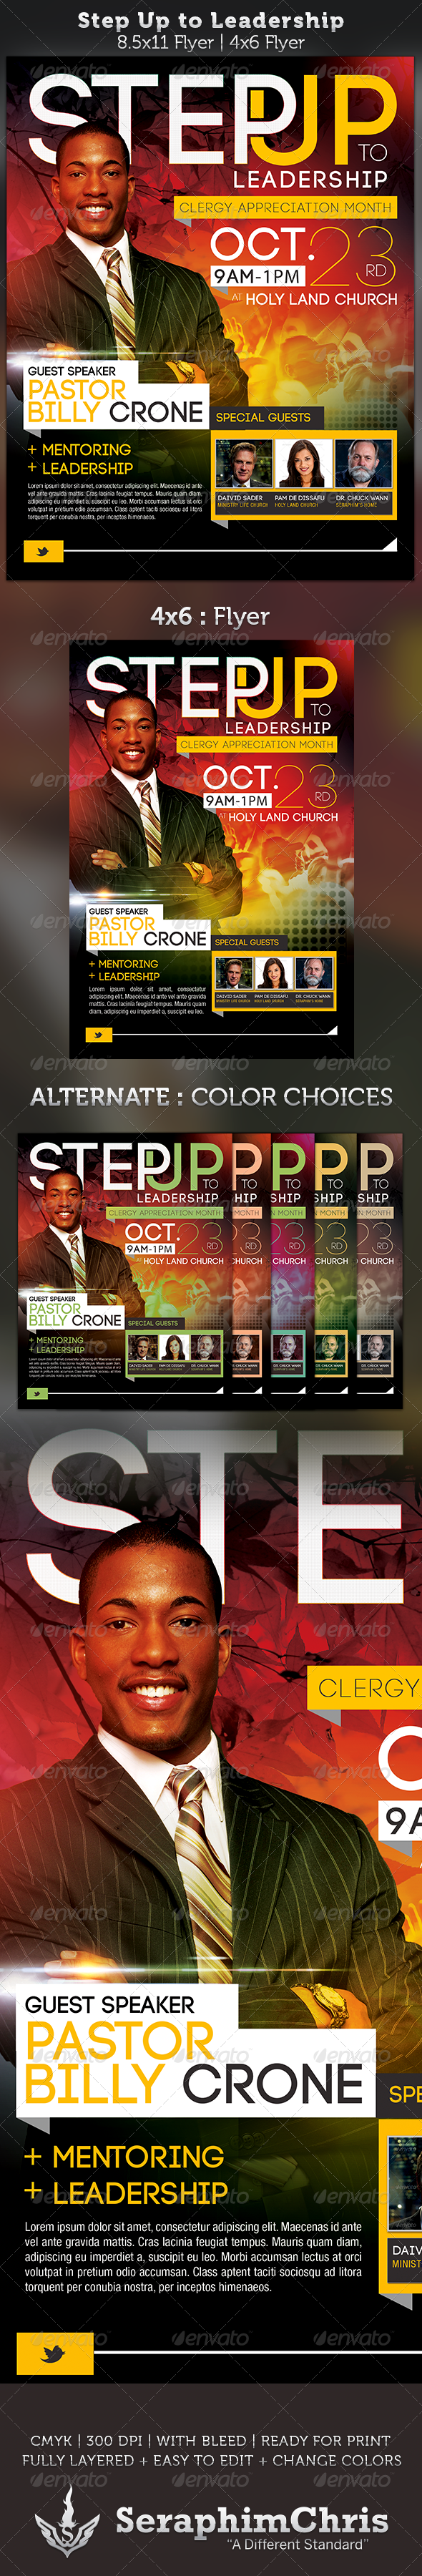 Step Up to Leadership: Church Flyer Template - Church Flyers